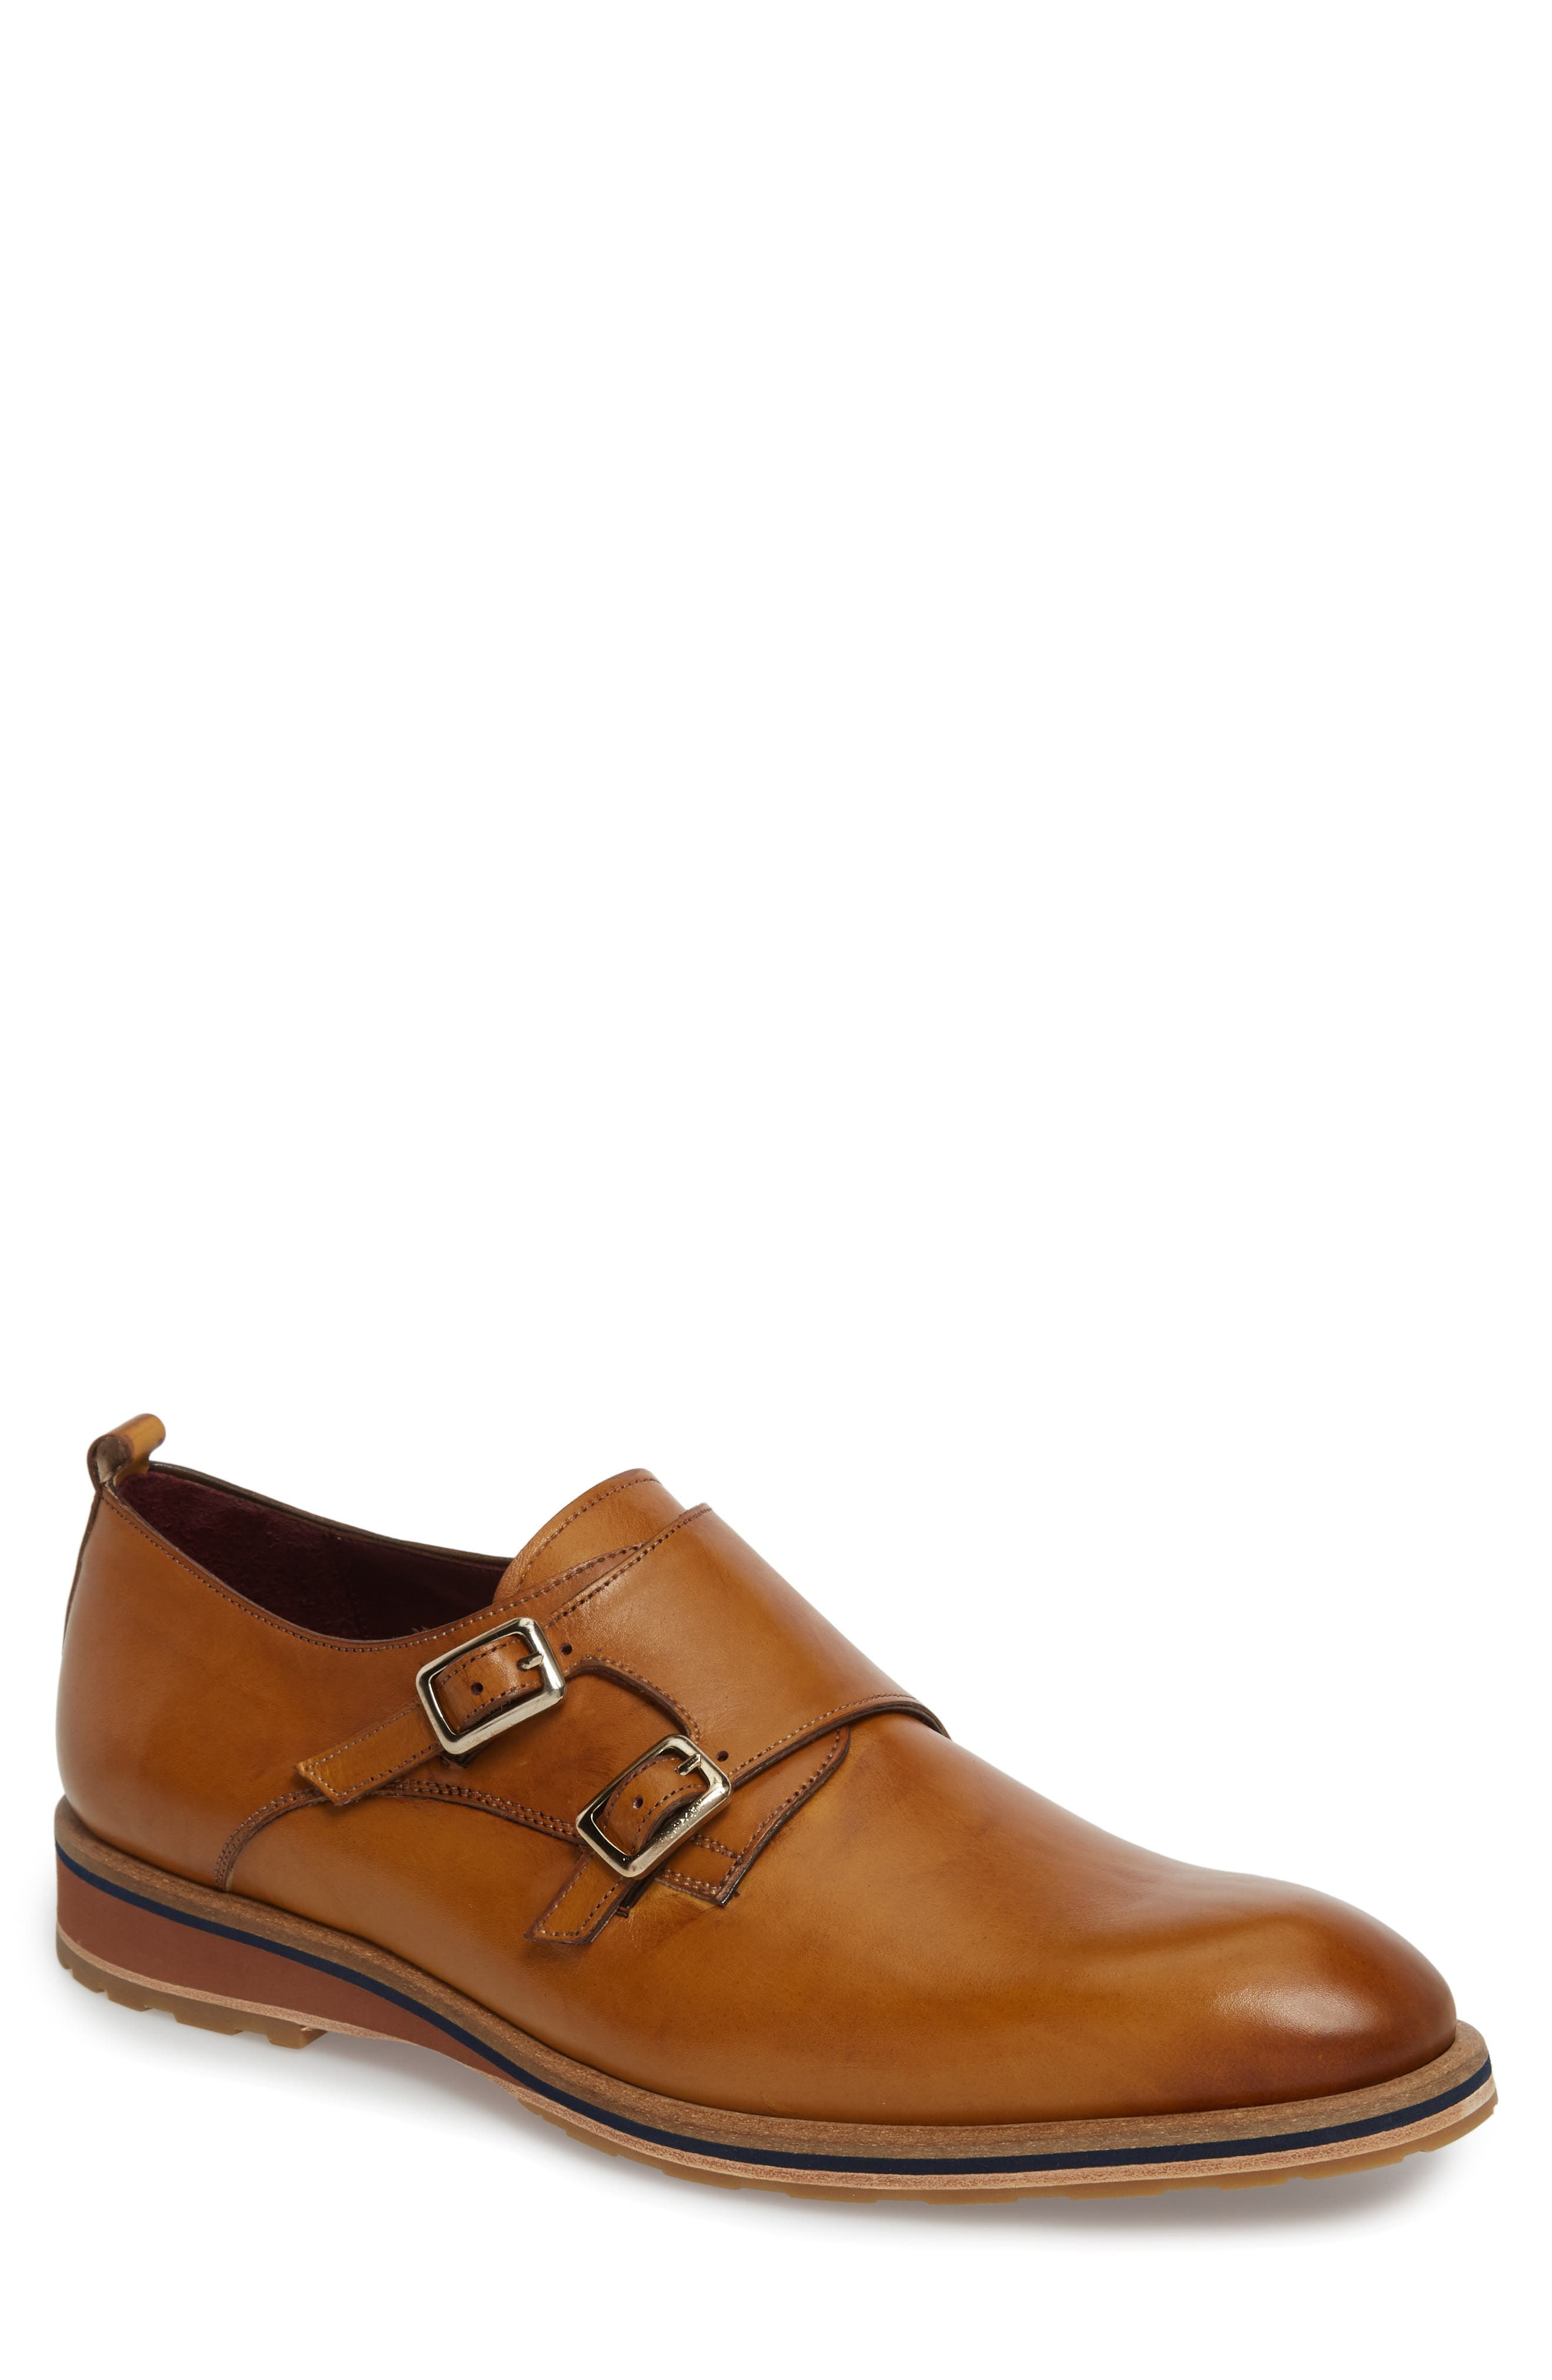 Apolo Double Buckle Monk Shoe,                         Main,                         color, Honey Leather